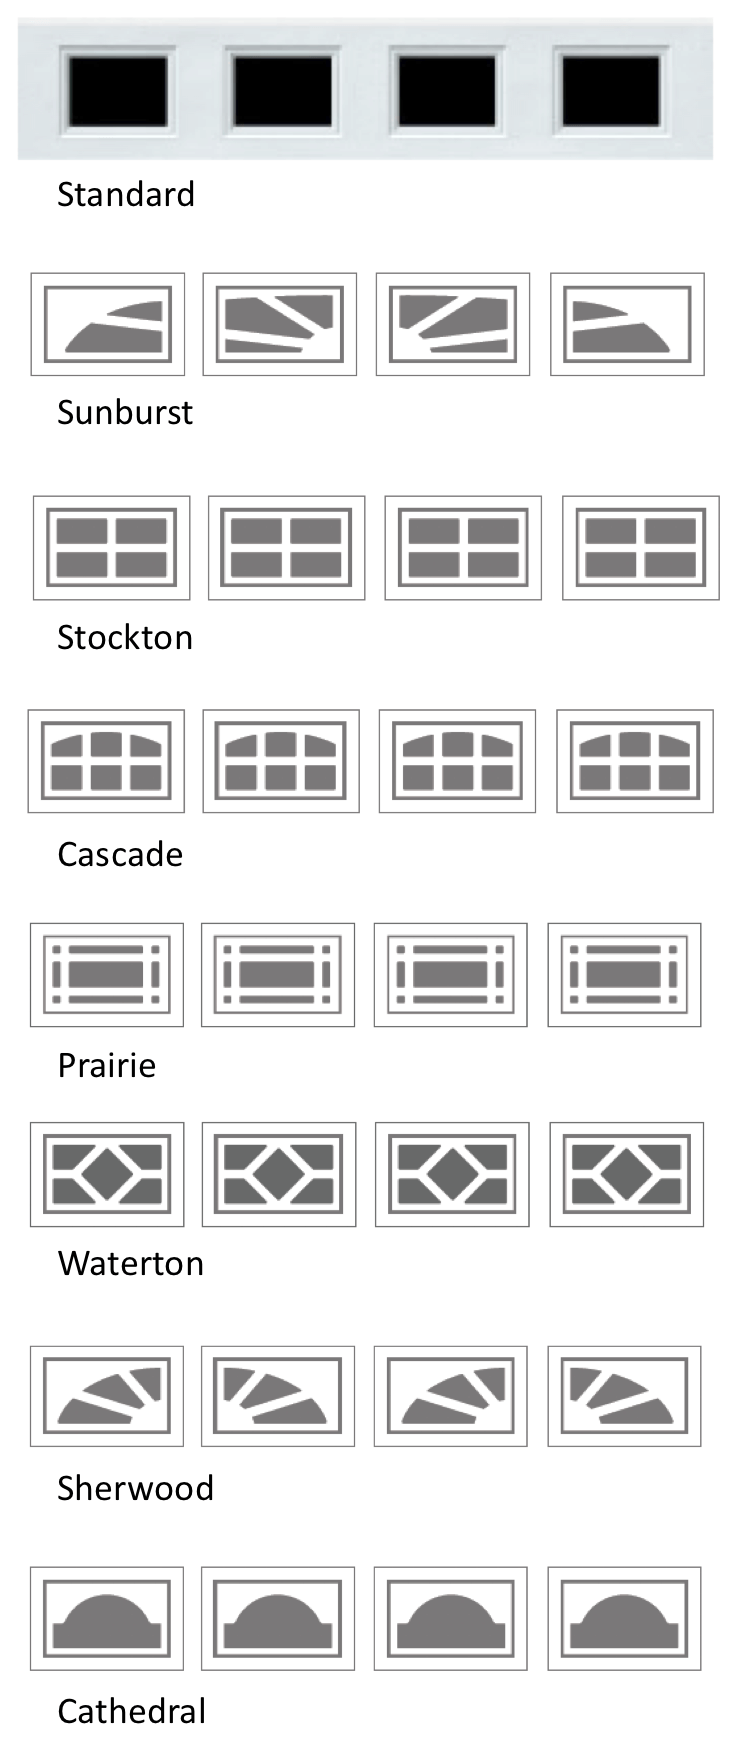 standard-door-glass-options.png